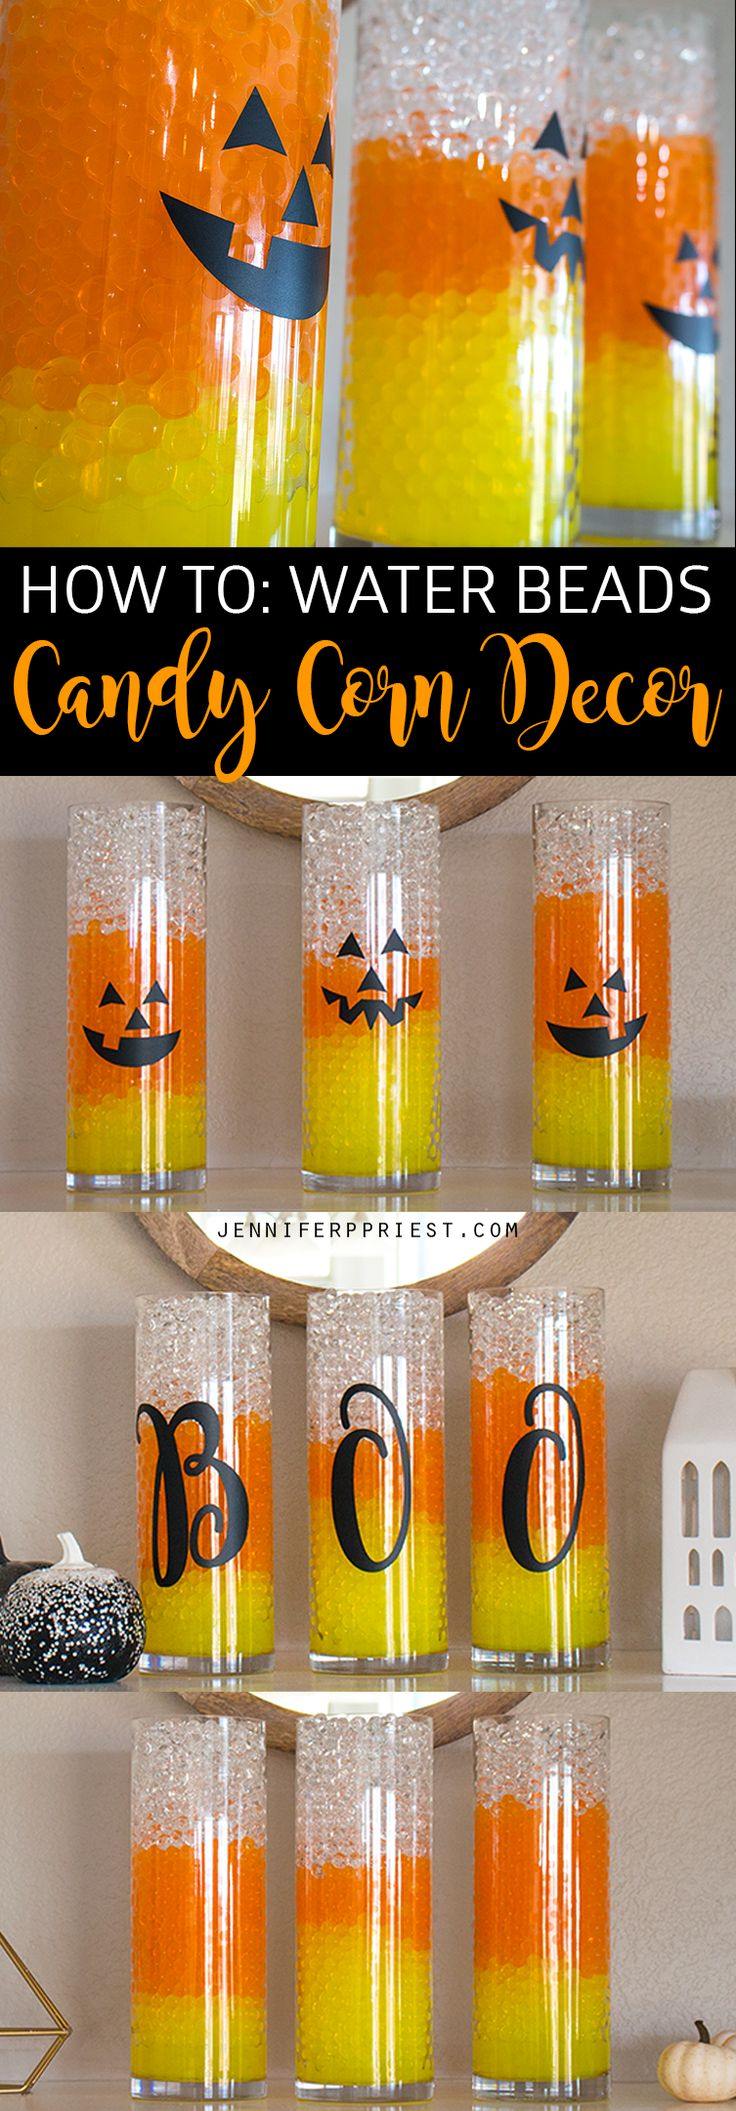 candy corn vases halloween decor is easy with gemnique water beads see how to - Candy Corn Halloween Decorations